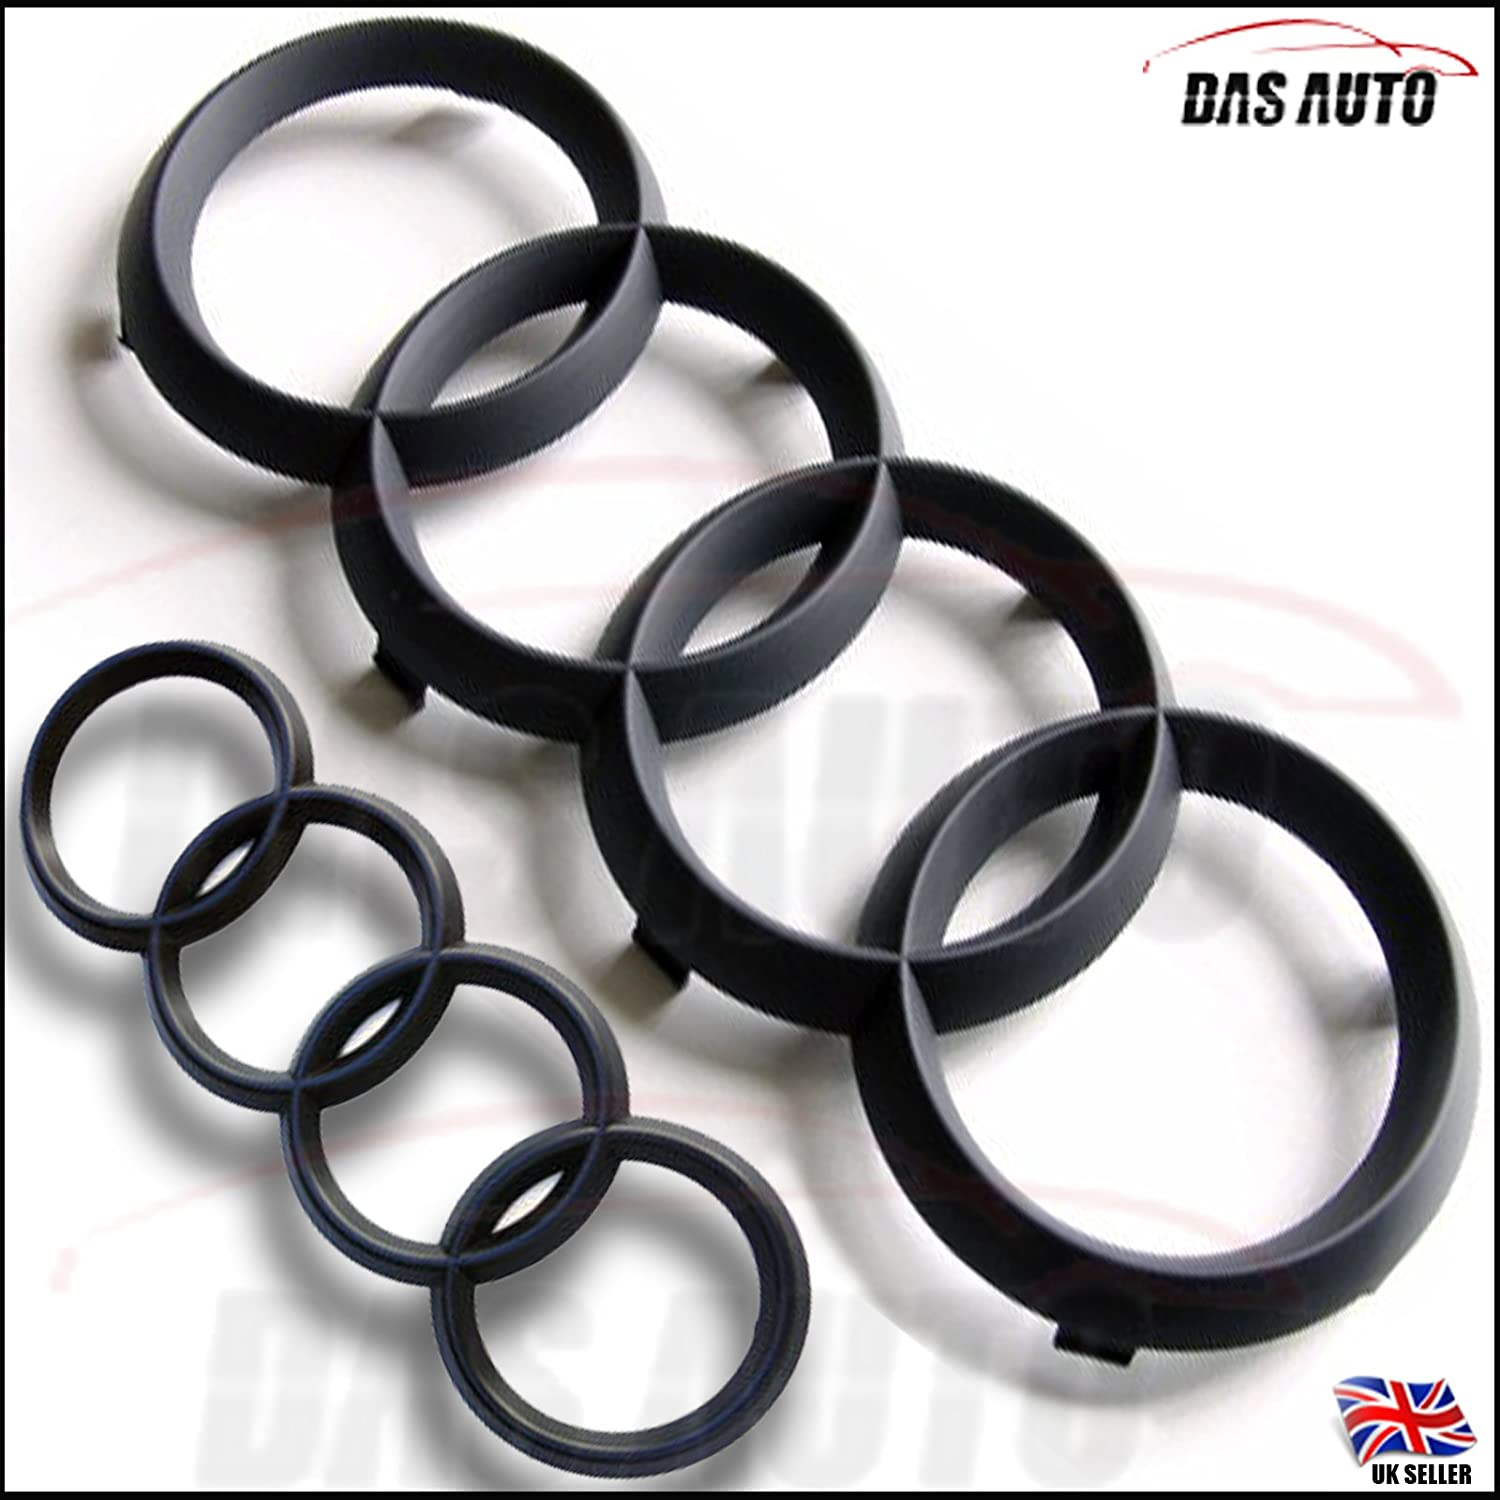 Das Automotive Matte Black Front Grill /& Rear Rings Badge Emblem